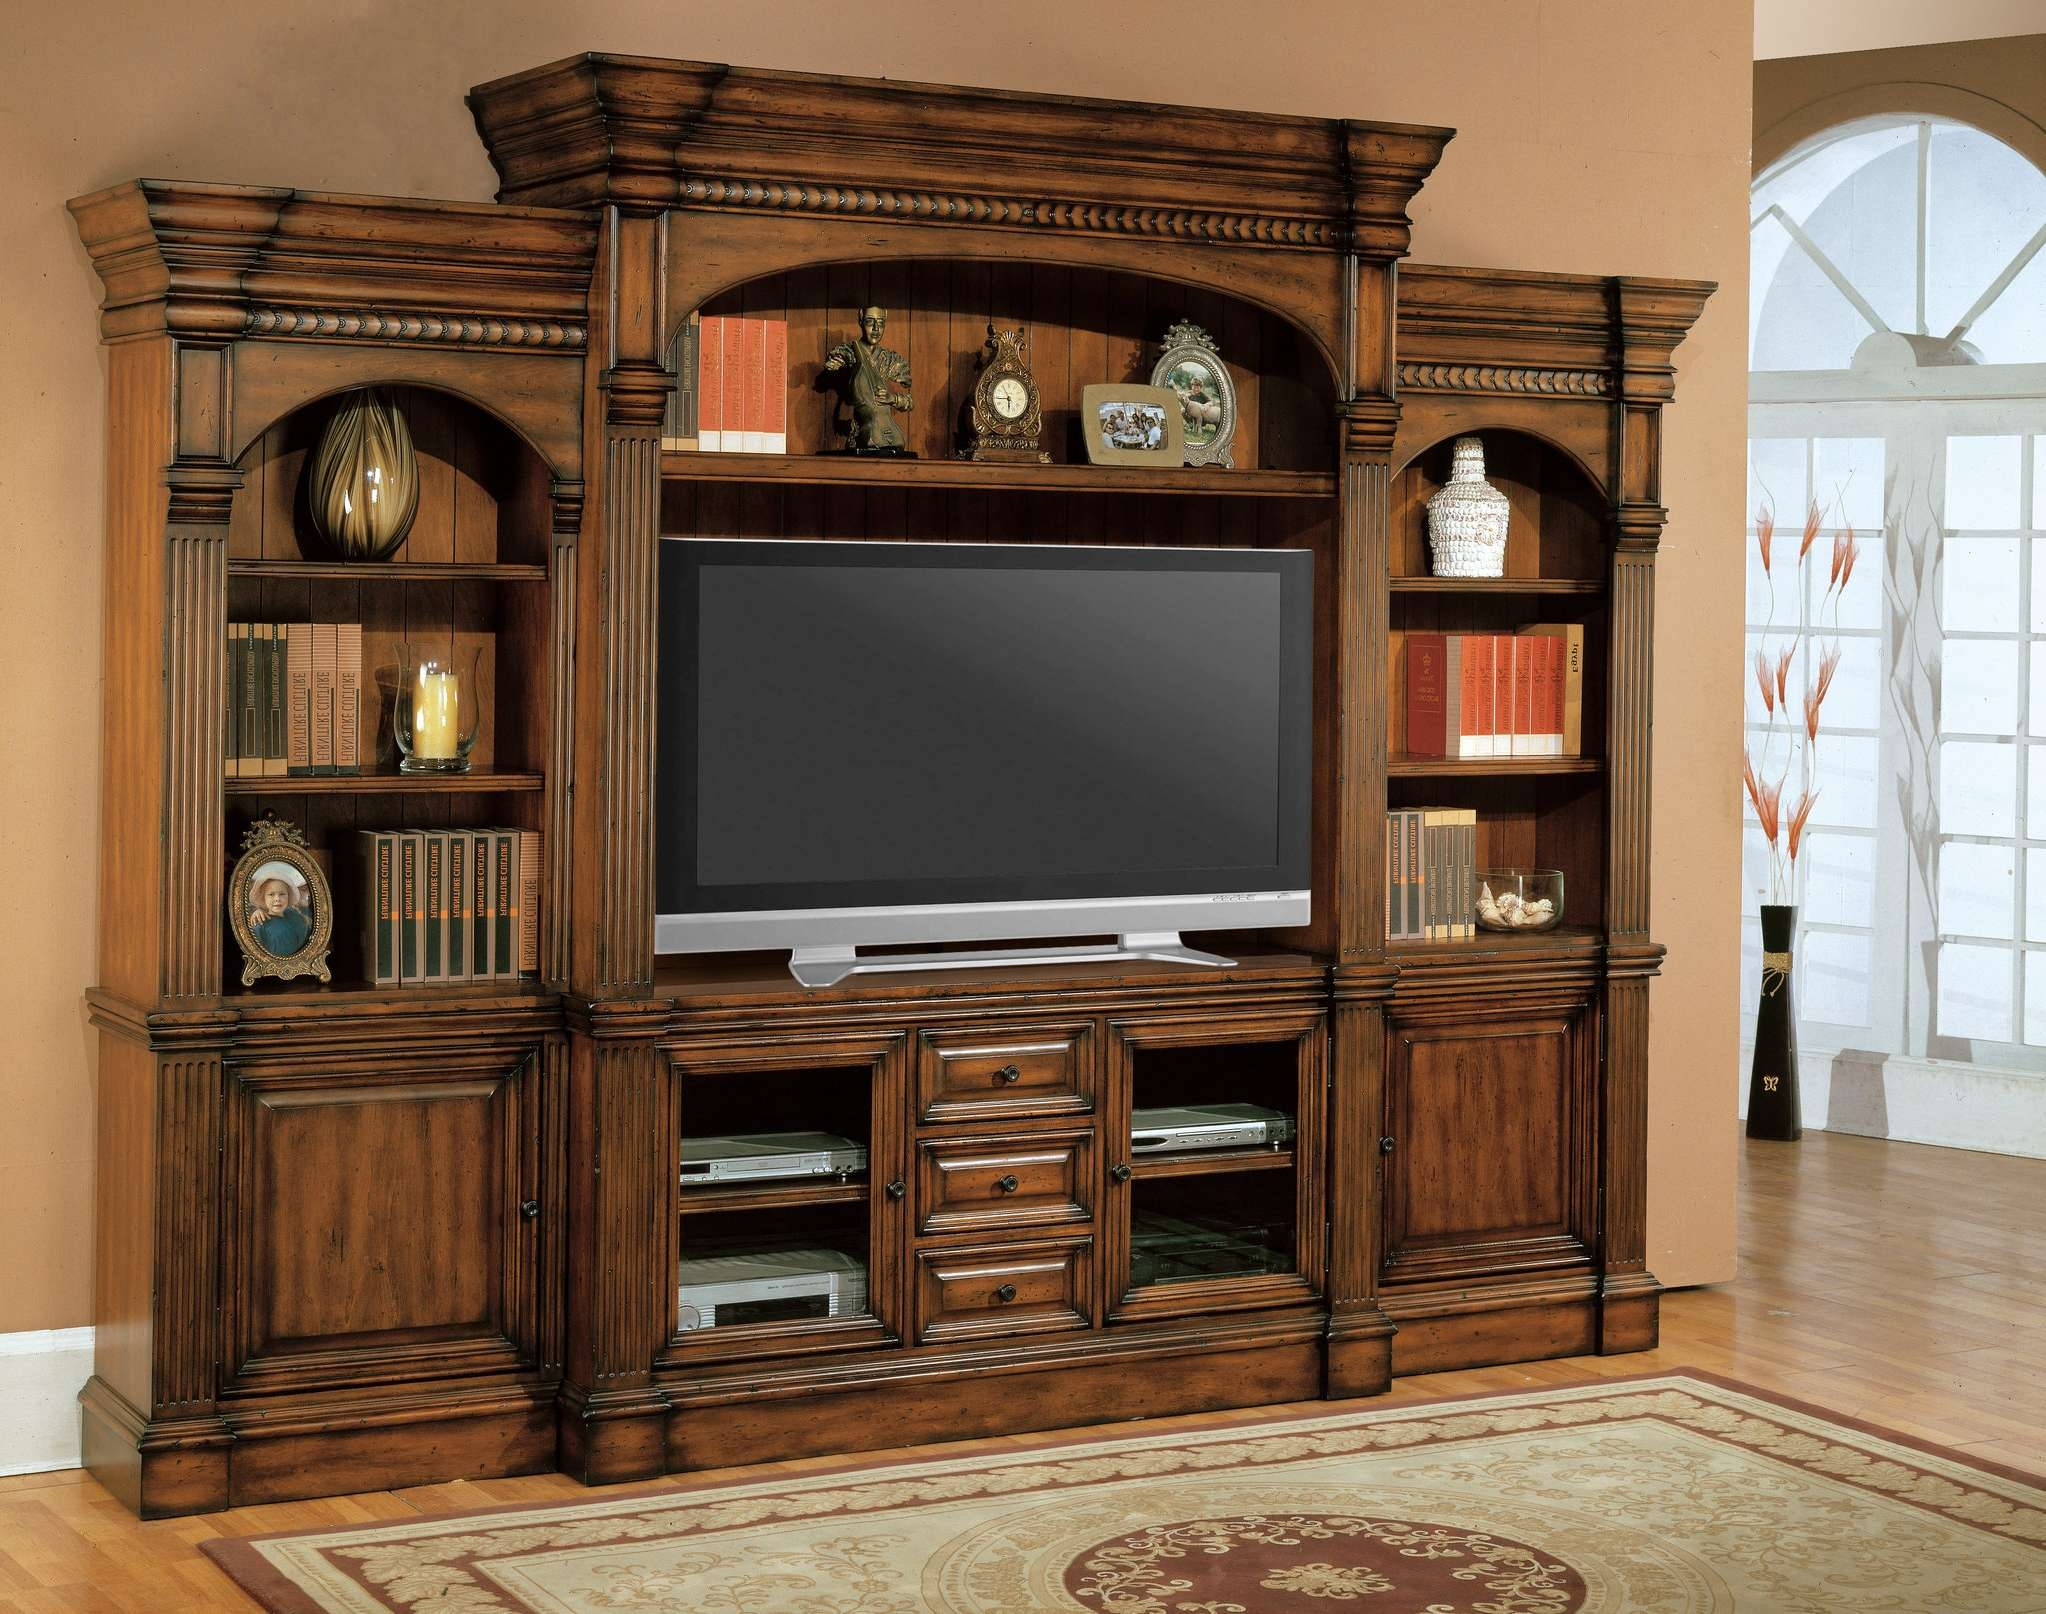 Tv Wall Cabinets For Flat Screens Flat Screen Wall Cabinet With Doors Review Home Co